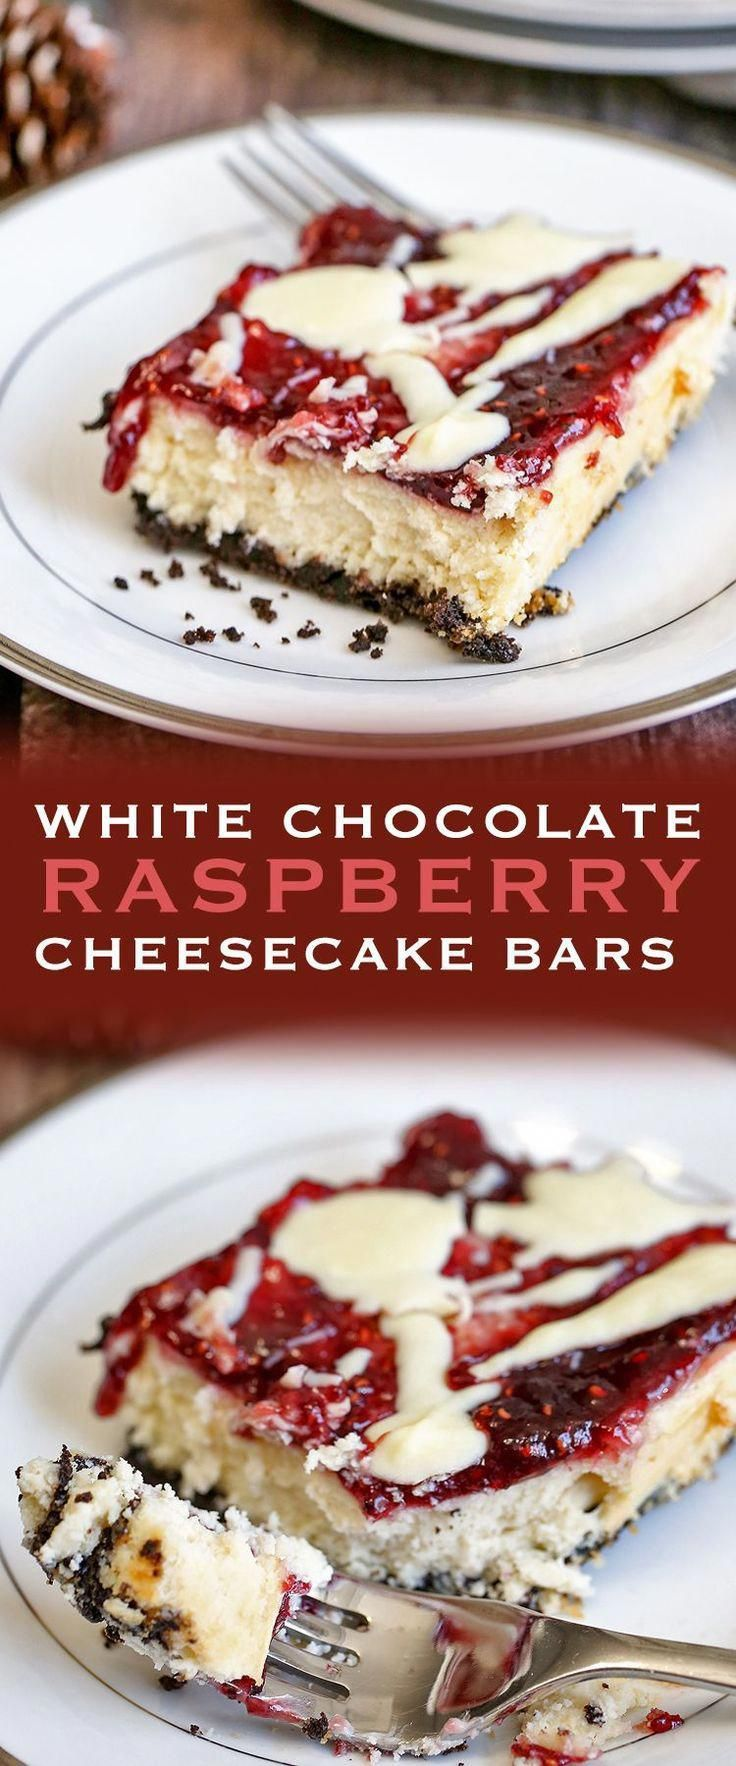 White Chocolate Raspberry Cheesecake Bars are sweet and tangy. The combination of an Oreo crust, white chocolate and raspberry jam is perfection #chocolatecheesecake #whitechocolateraspberrycheesecake